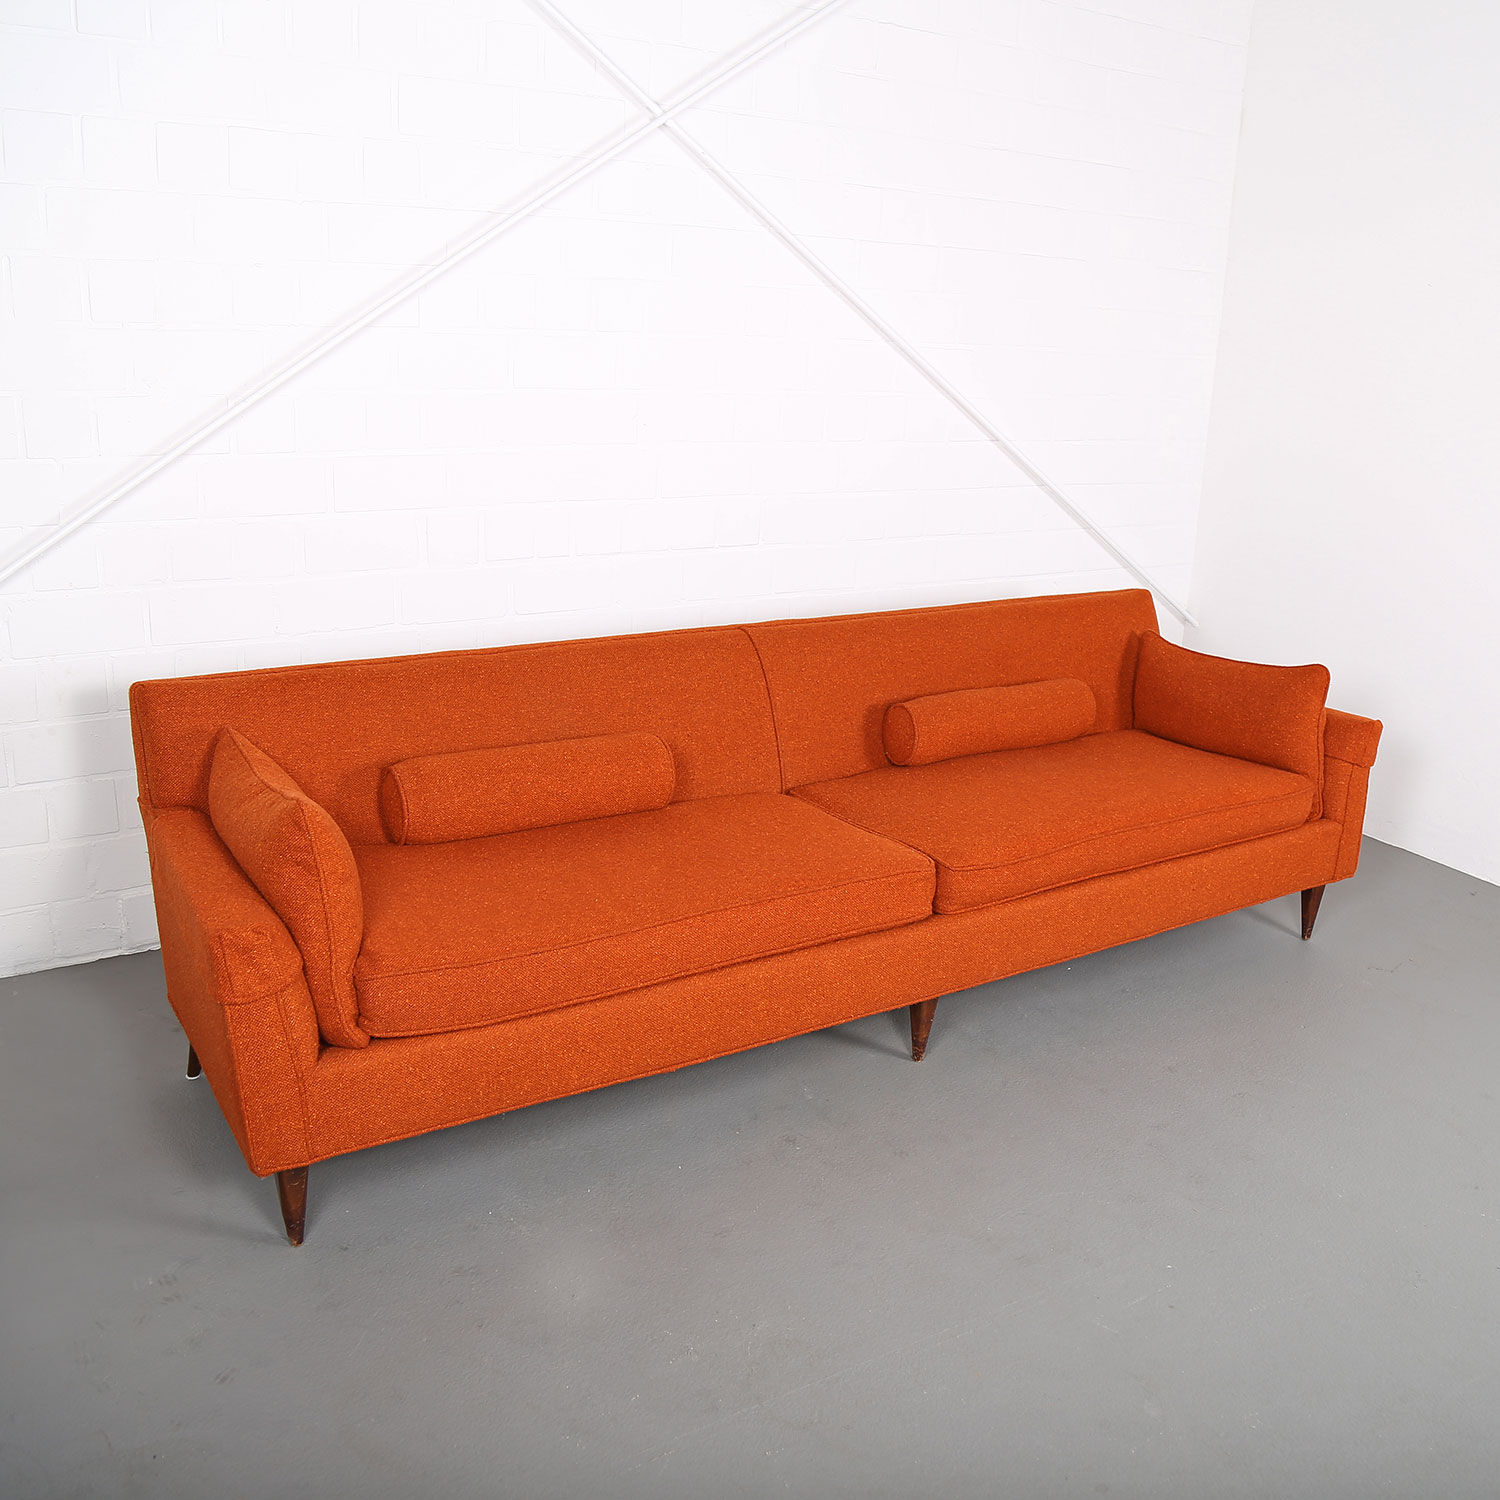 Mid century modern sofa usa kroehler edward wormley milo for Midcentury modern couch